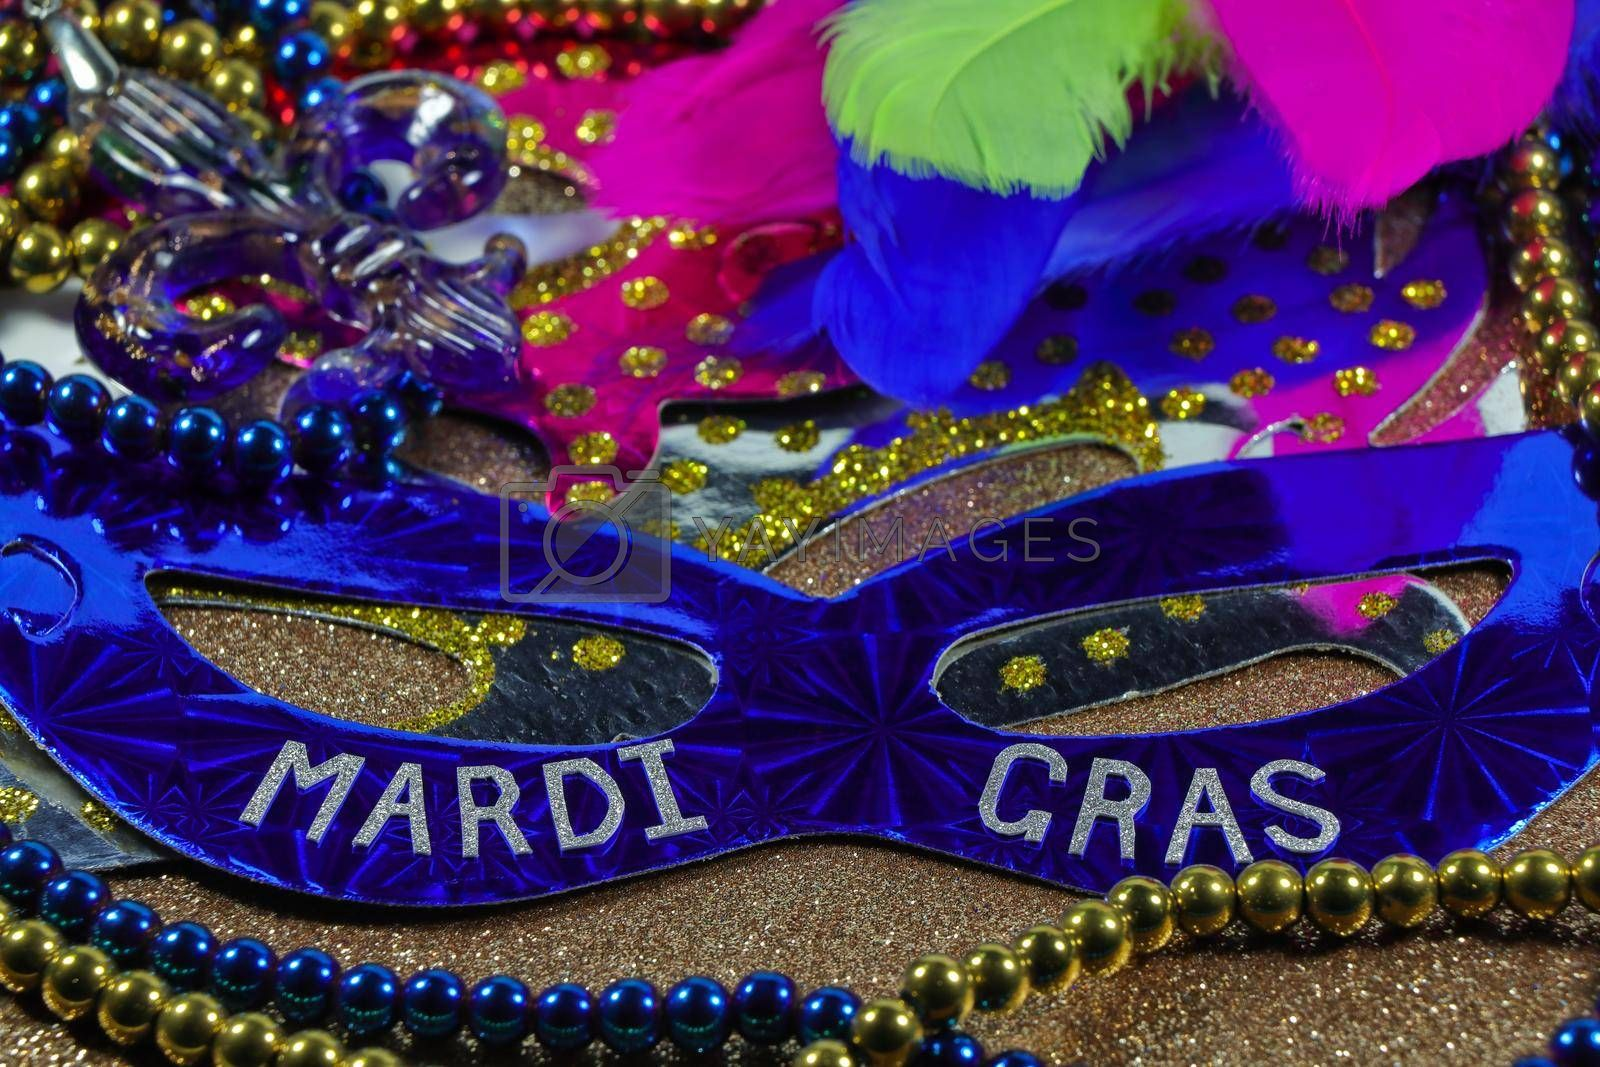 Mardi Gras carnival theme party masks with feathers and jewelry on textured gold surface abstract